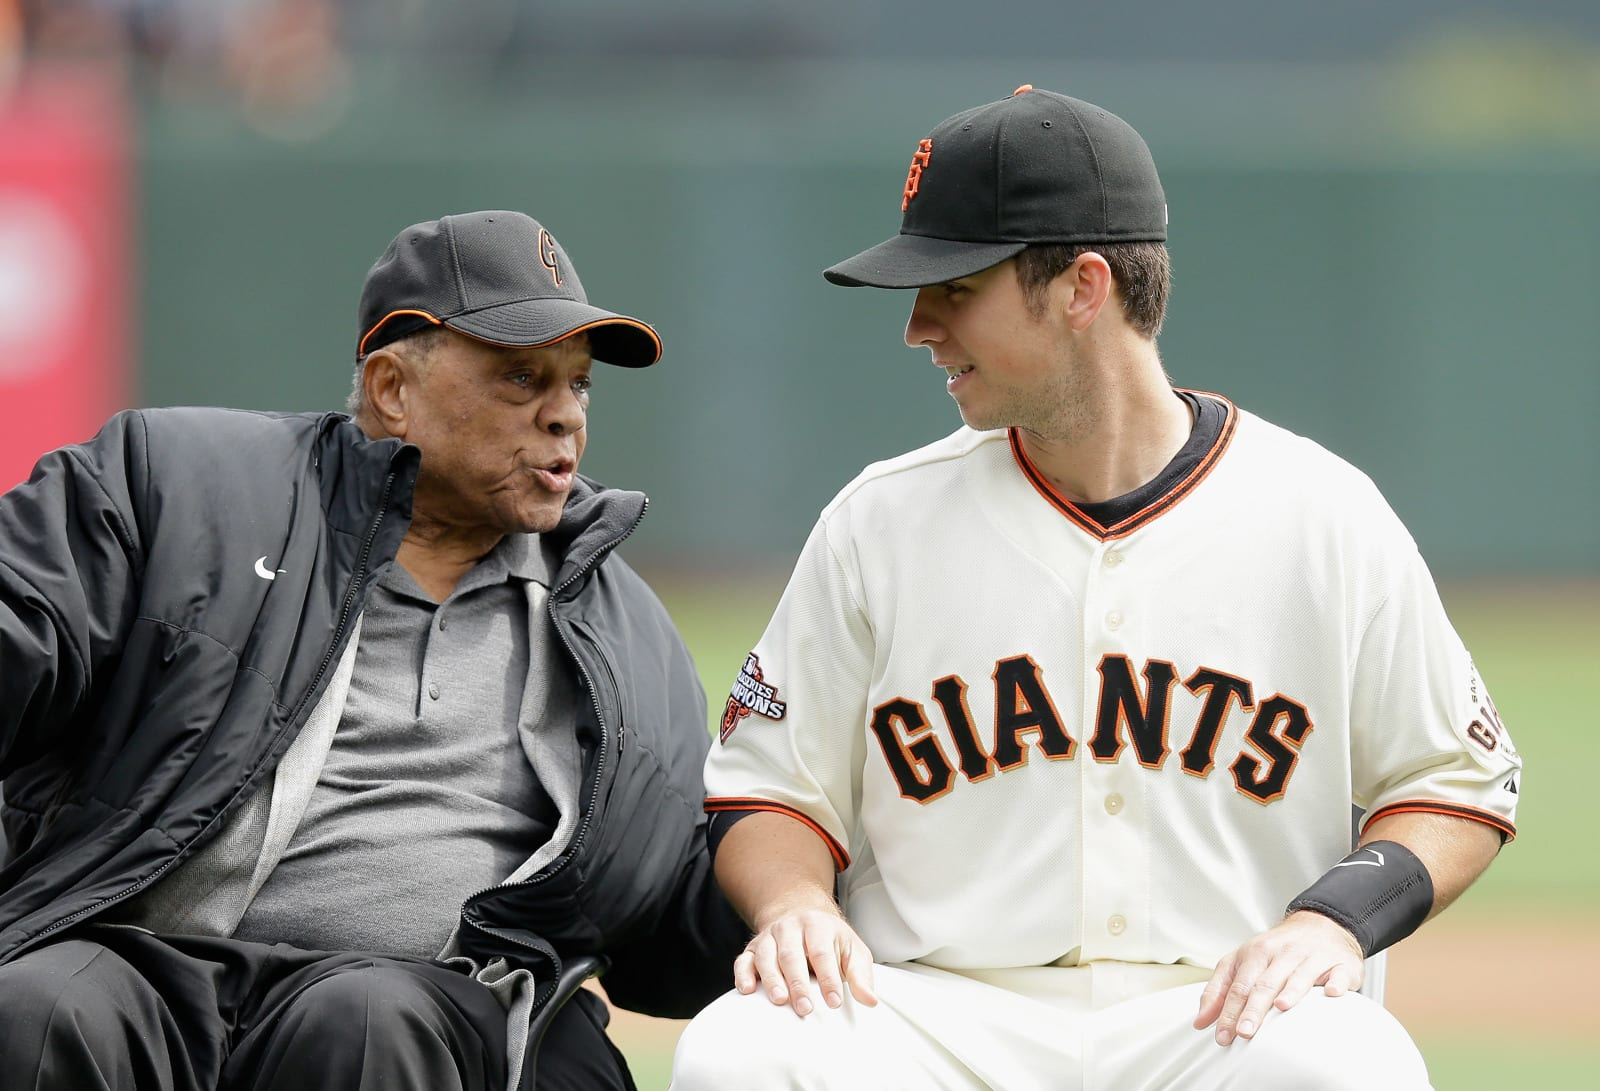 SF Giants, Willie Mays, Buster Posey